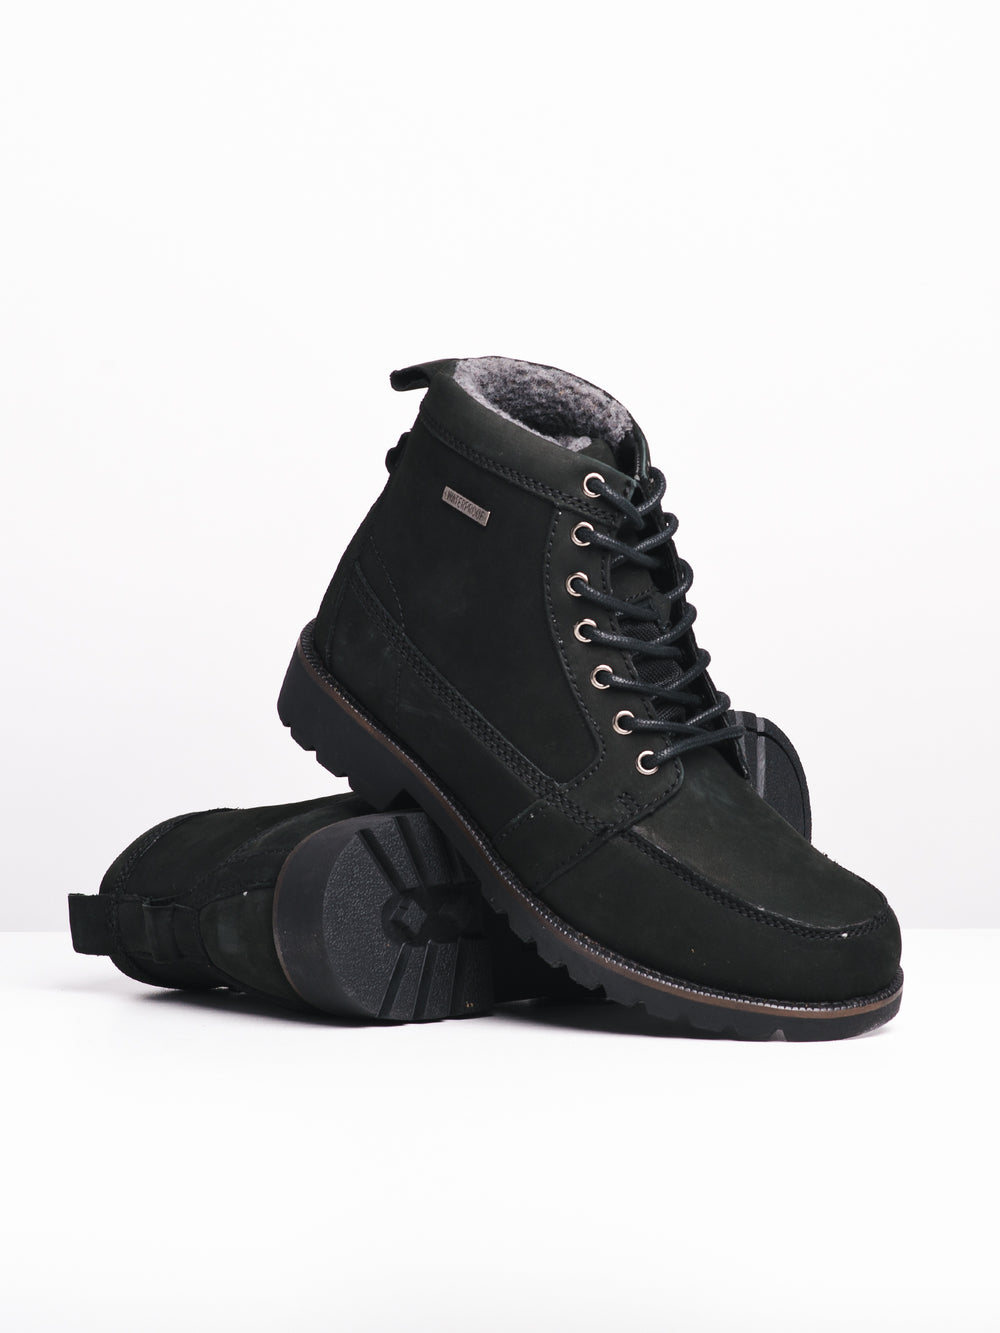 MENS FRANKIE - BLACK-D5 - CLEARANCE